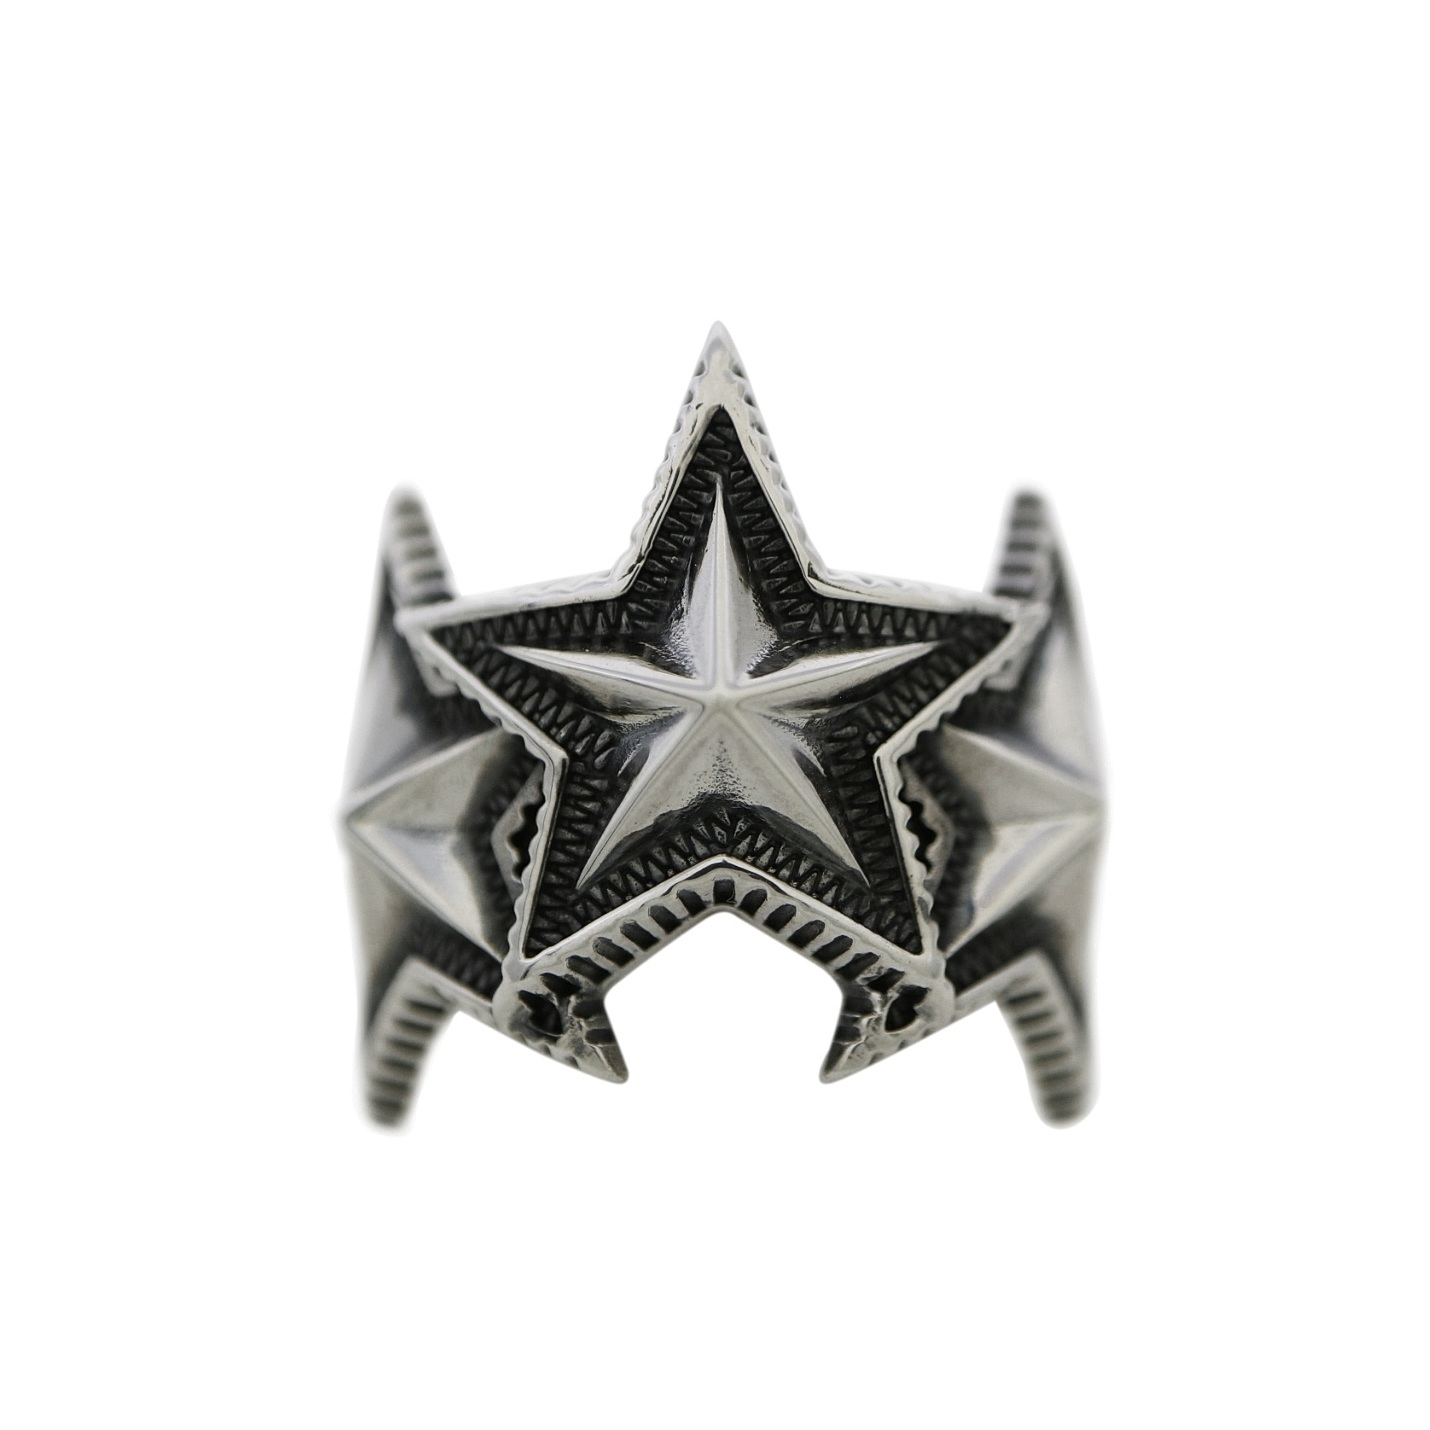 3 INTERLOCKING STAR RING - 2021 [USD $900]